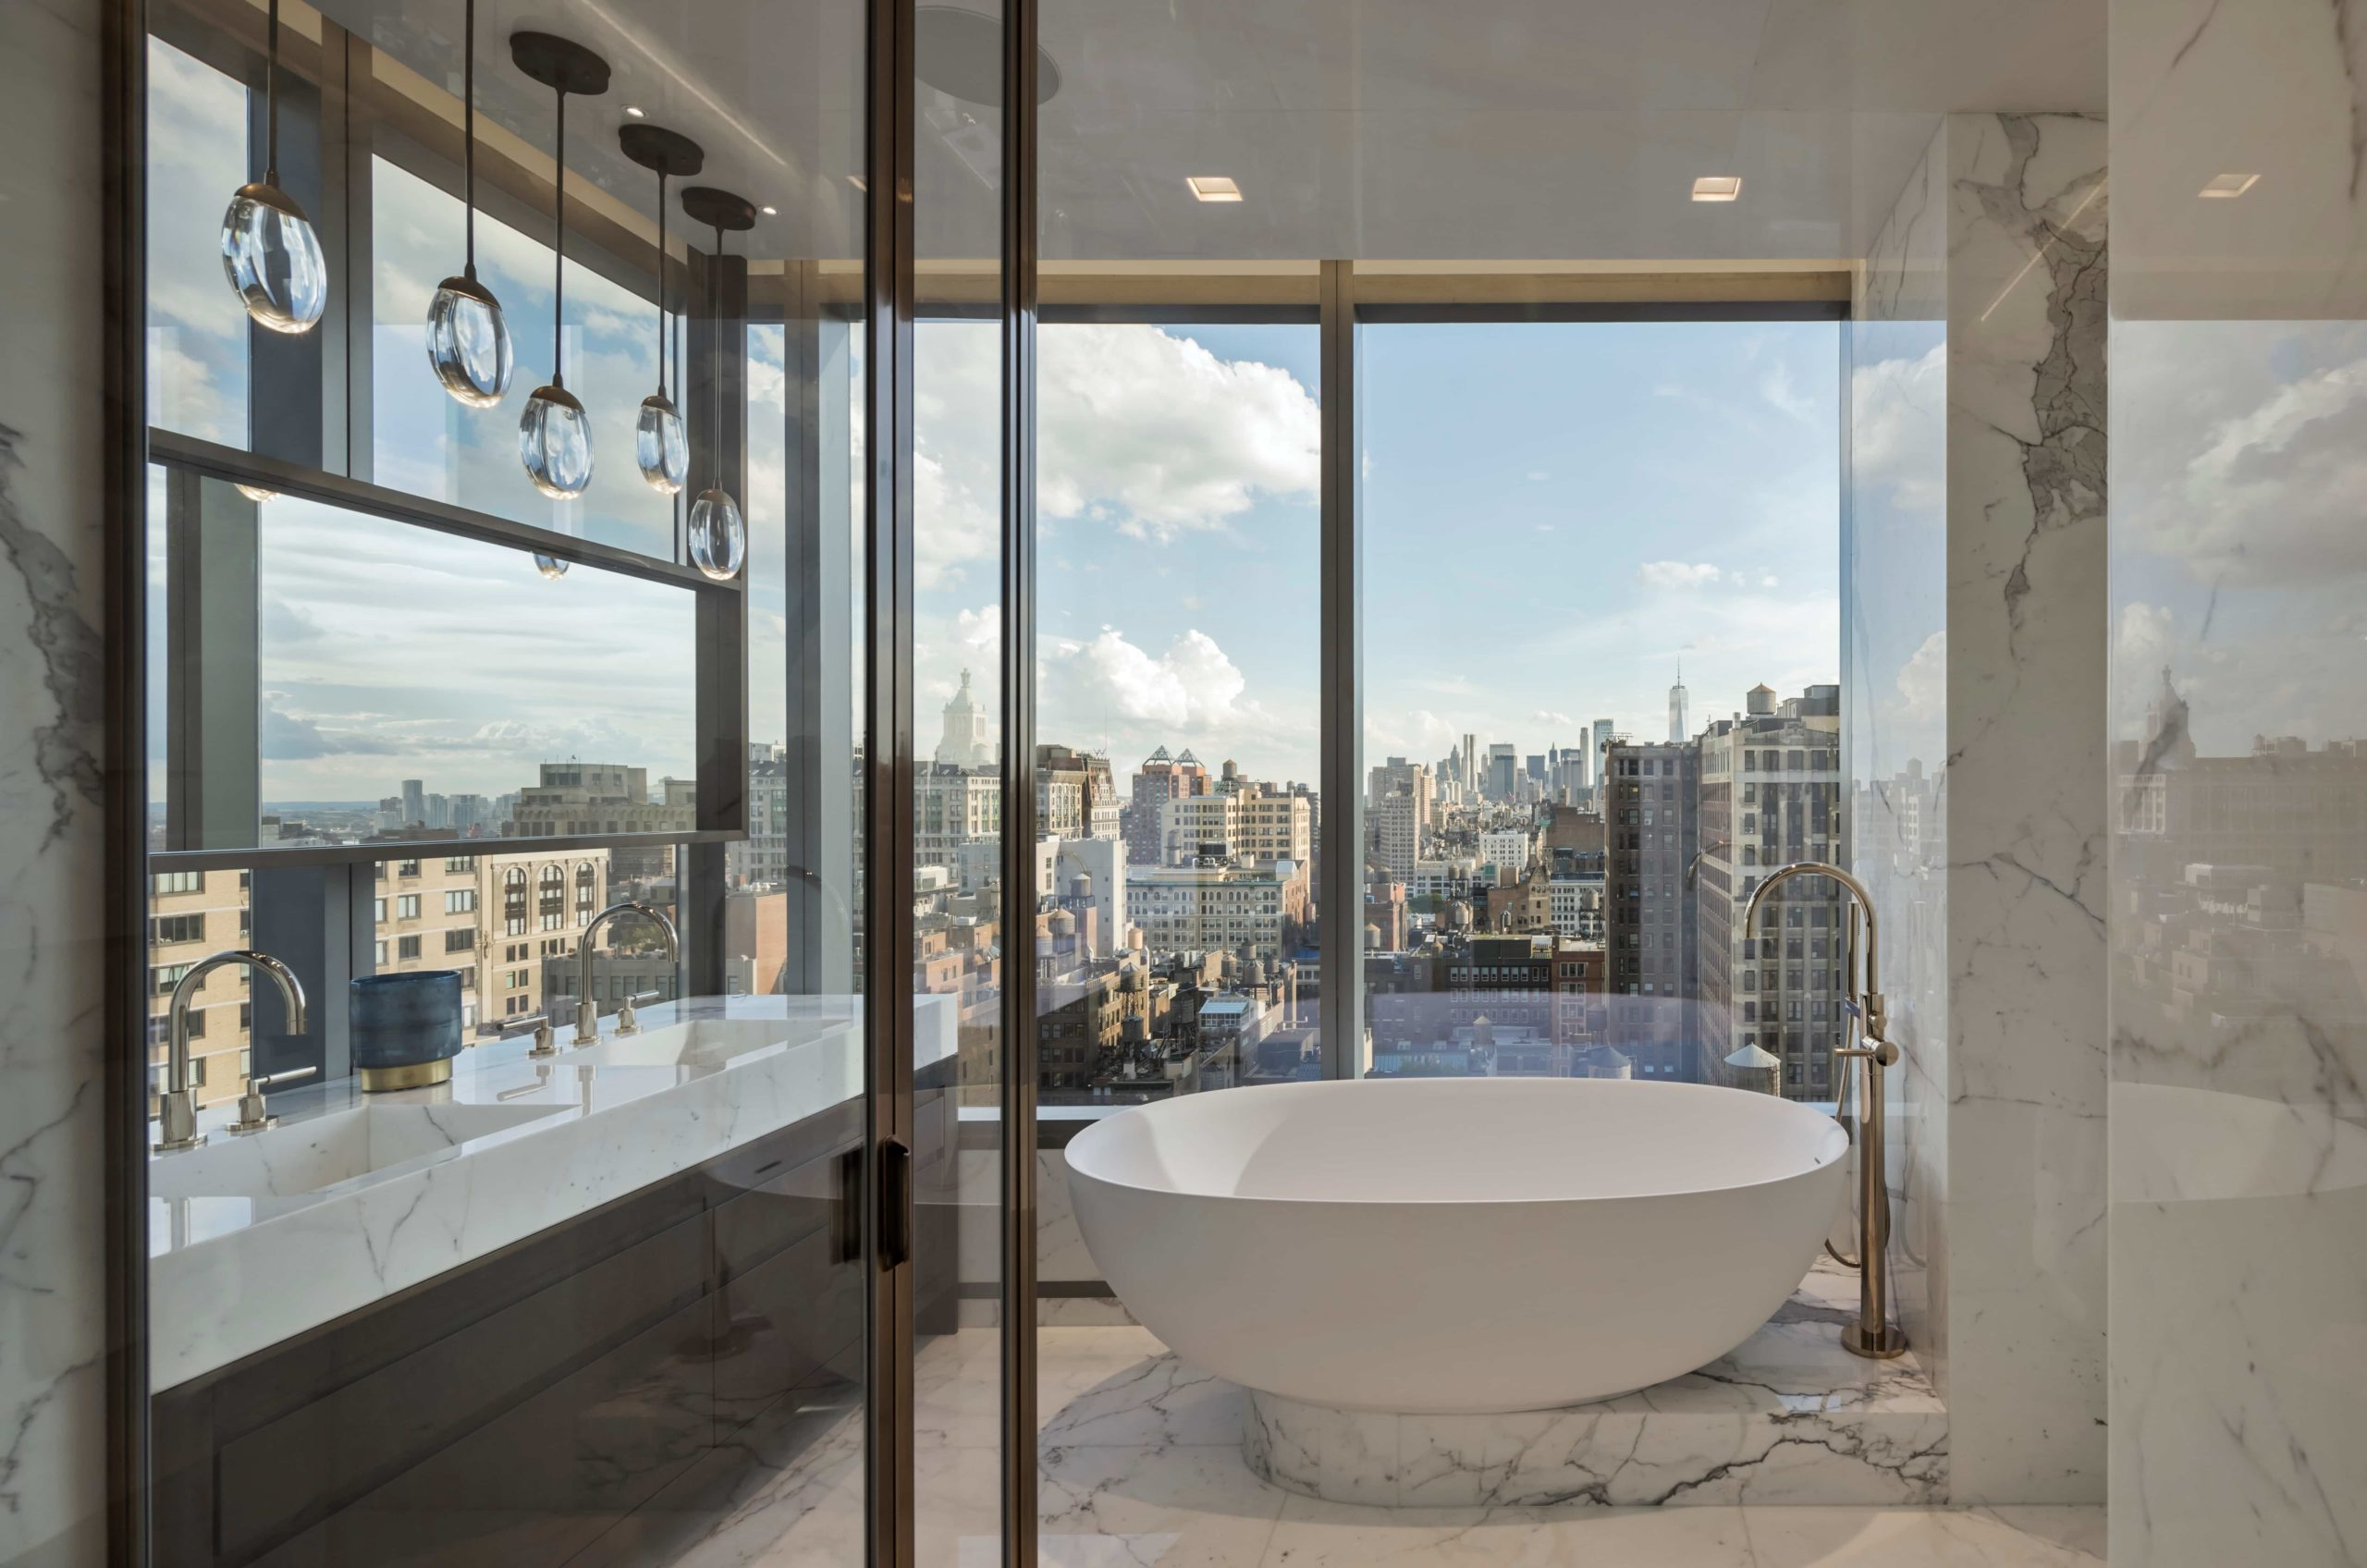 Bath tub overlooking city